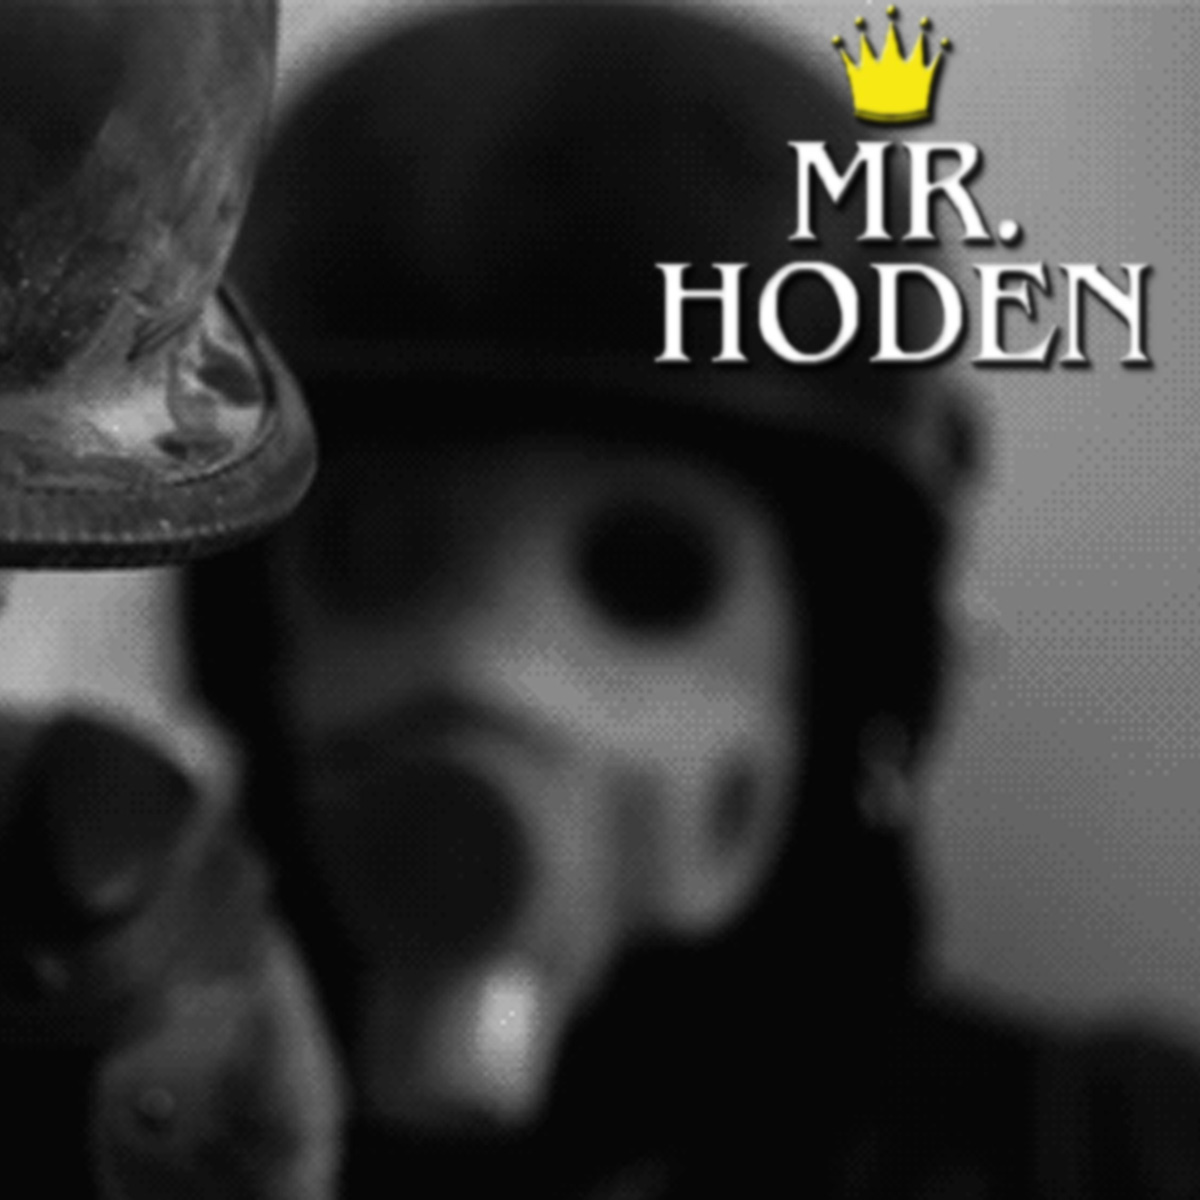 Upcoming: Mr. Hoden - Aggressive Hard Hip Hop Beat 2019 [FREE BEAT]